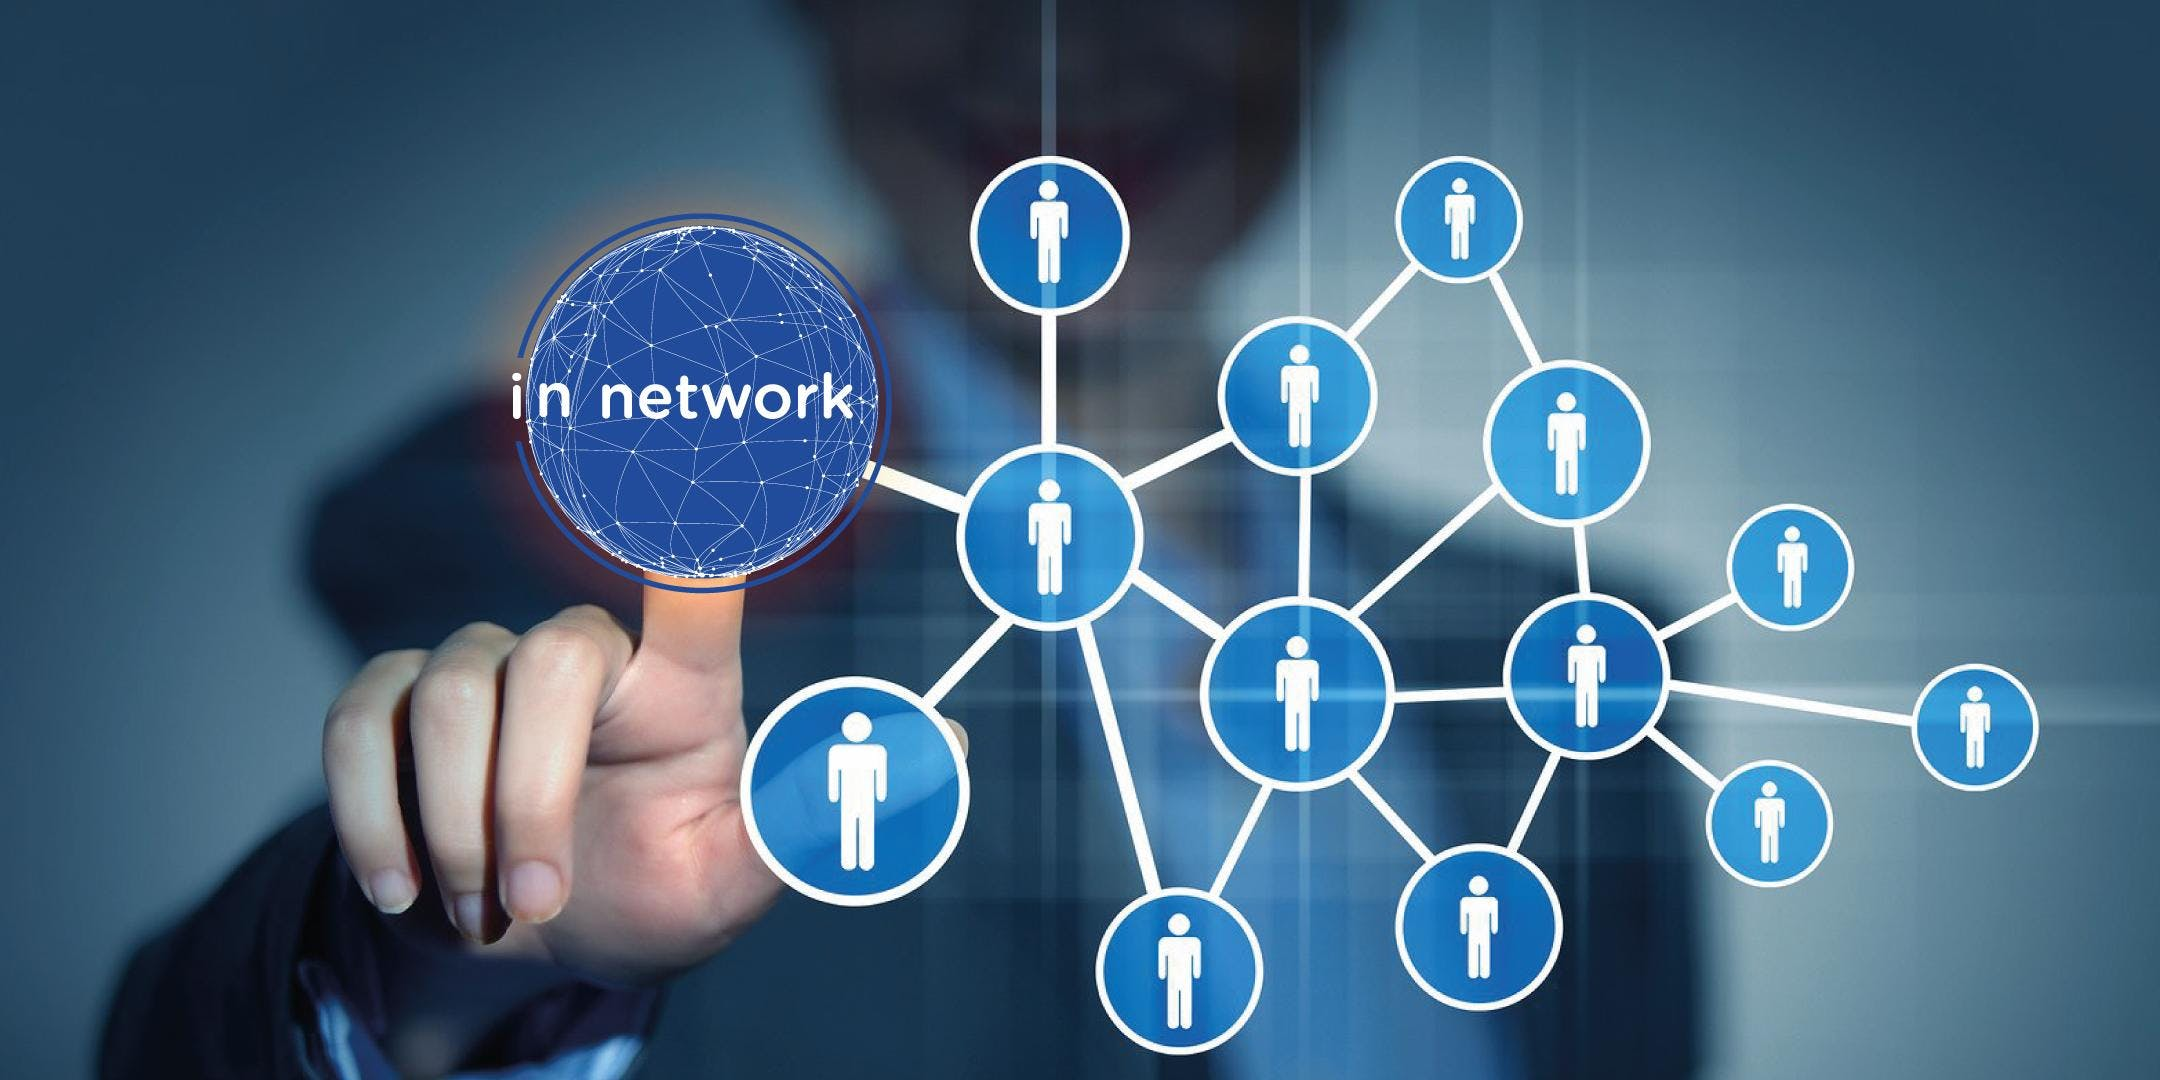 inNetwork - Percorso di Networking per Esseri